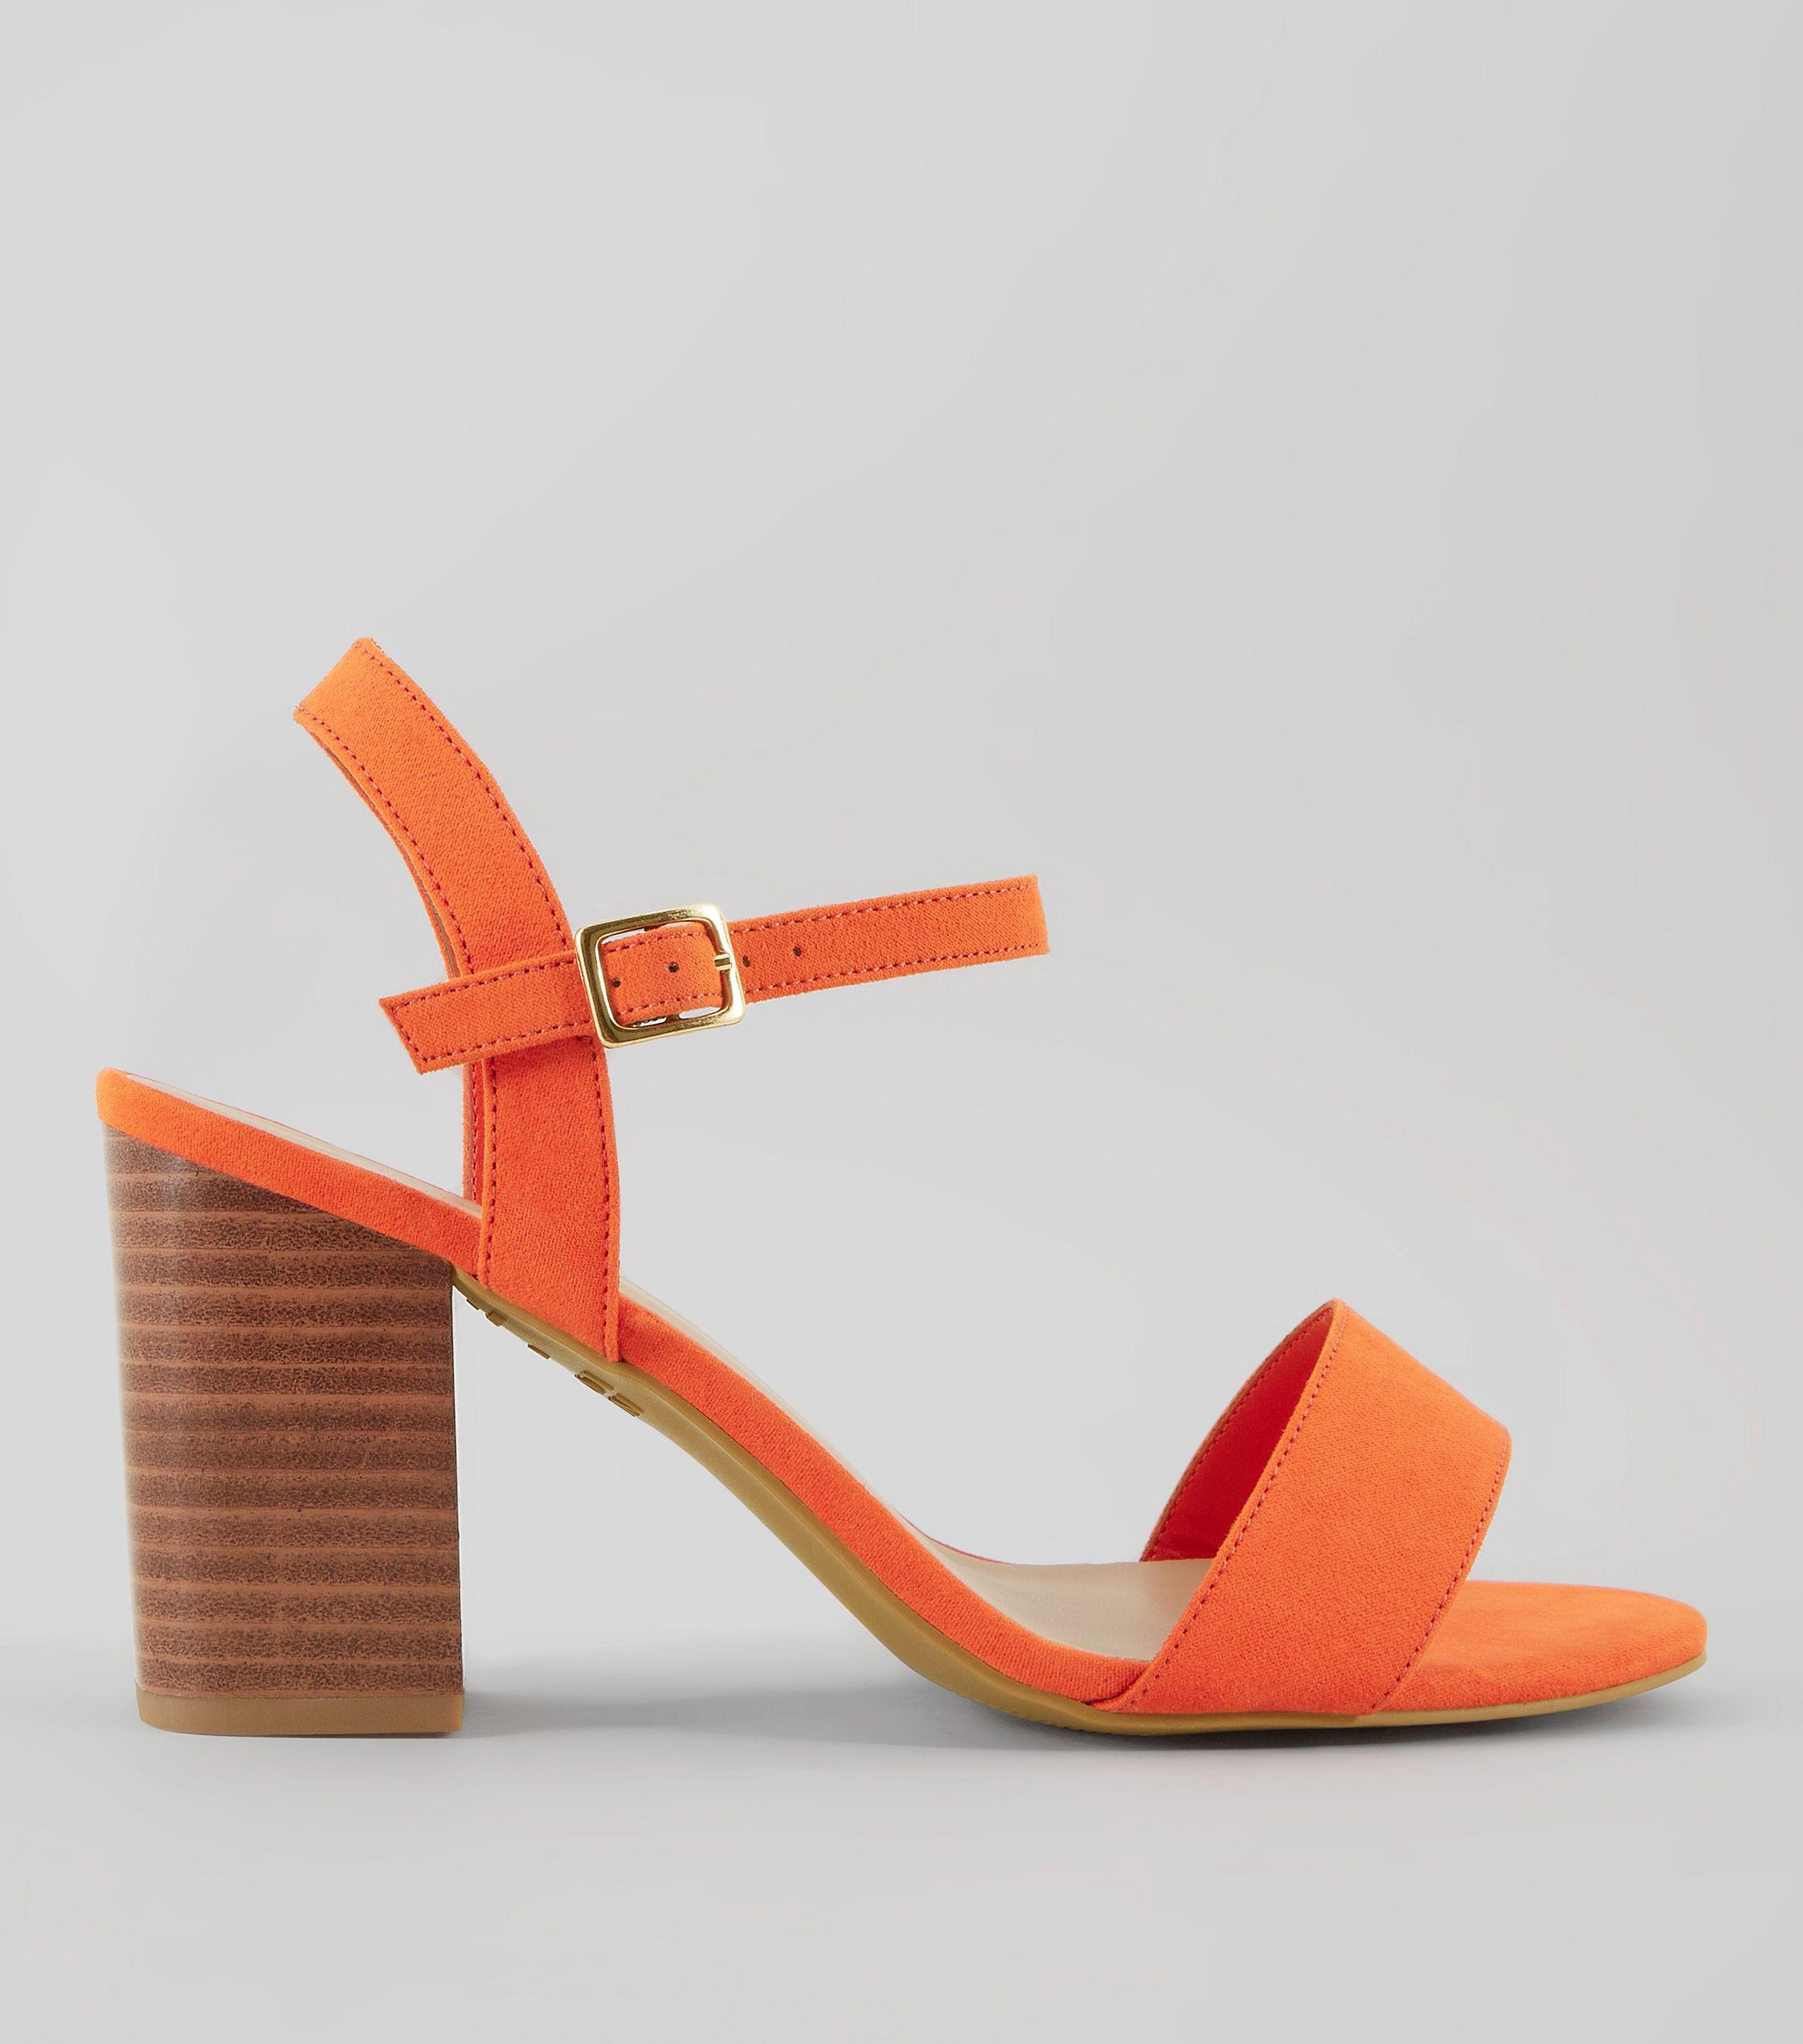 5089801dafe New Look Wide Fit Orange Wooden Block Heels in Orange - Lyst